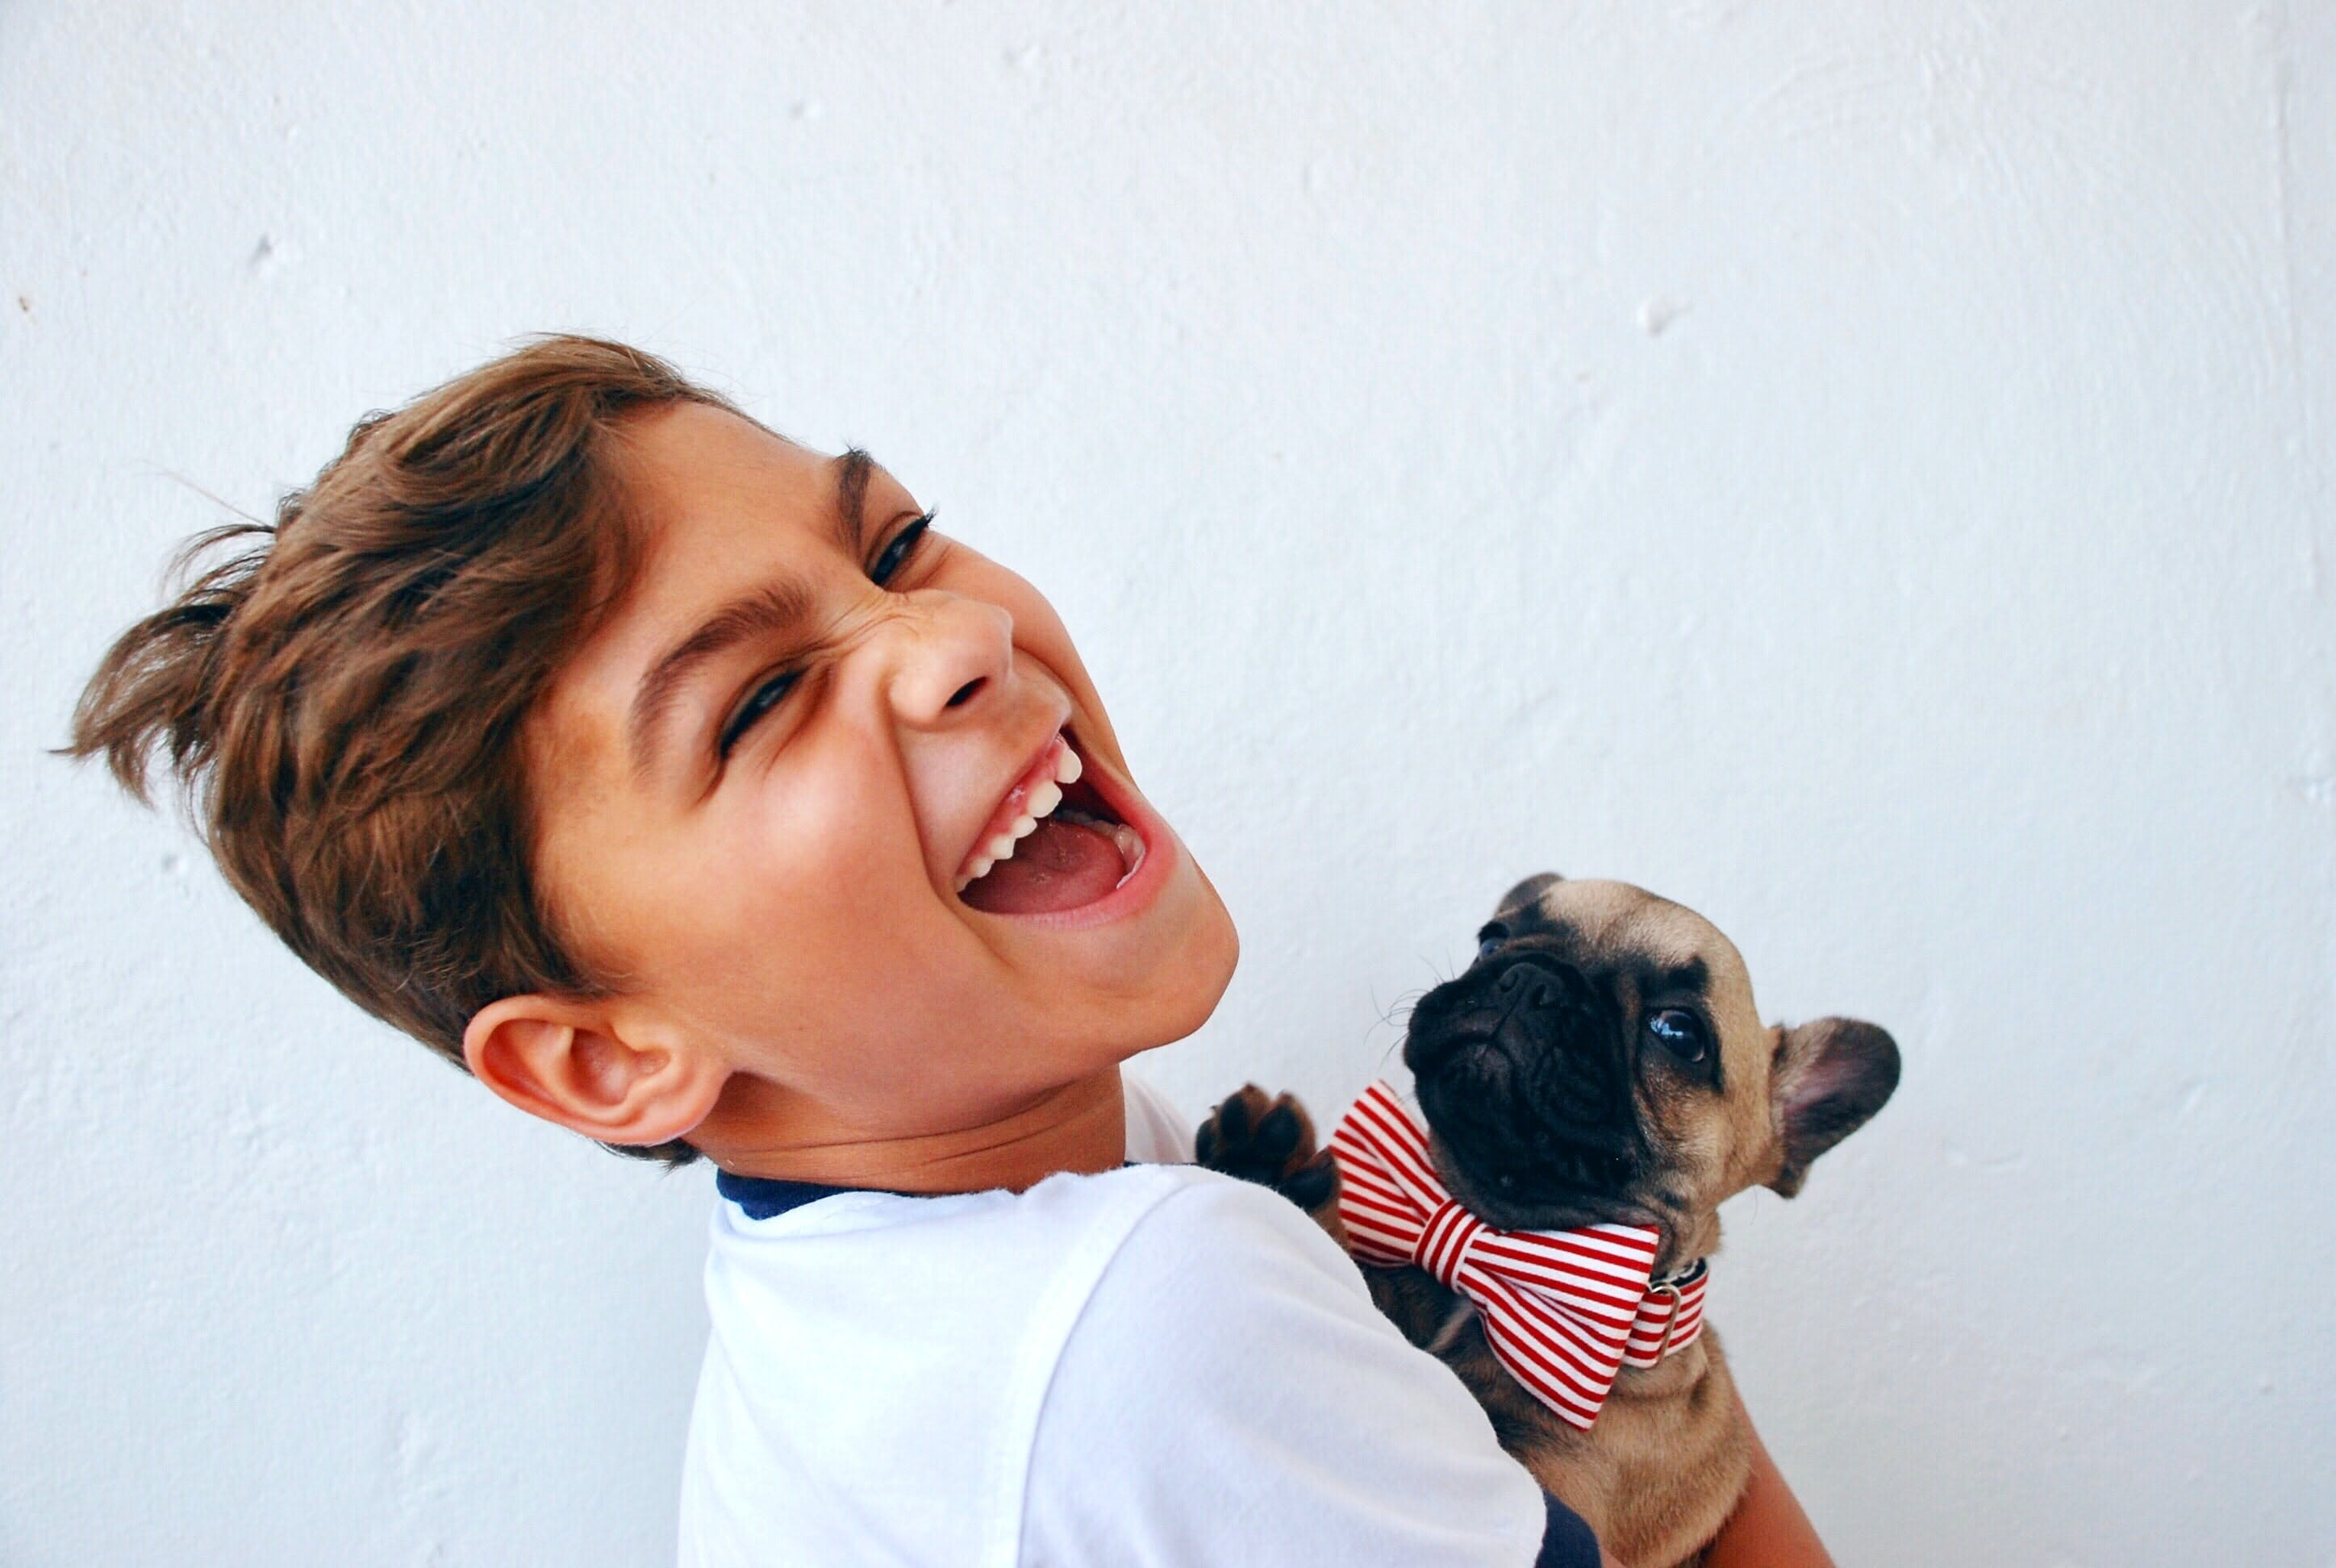 daily-wag-pet-safety-tips-labor-day-advice-for-keeping-our-furbabies-safe-hero-image